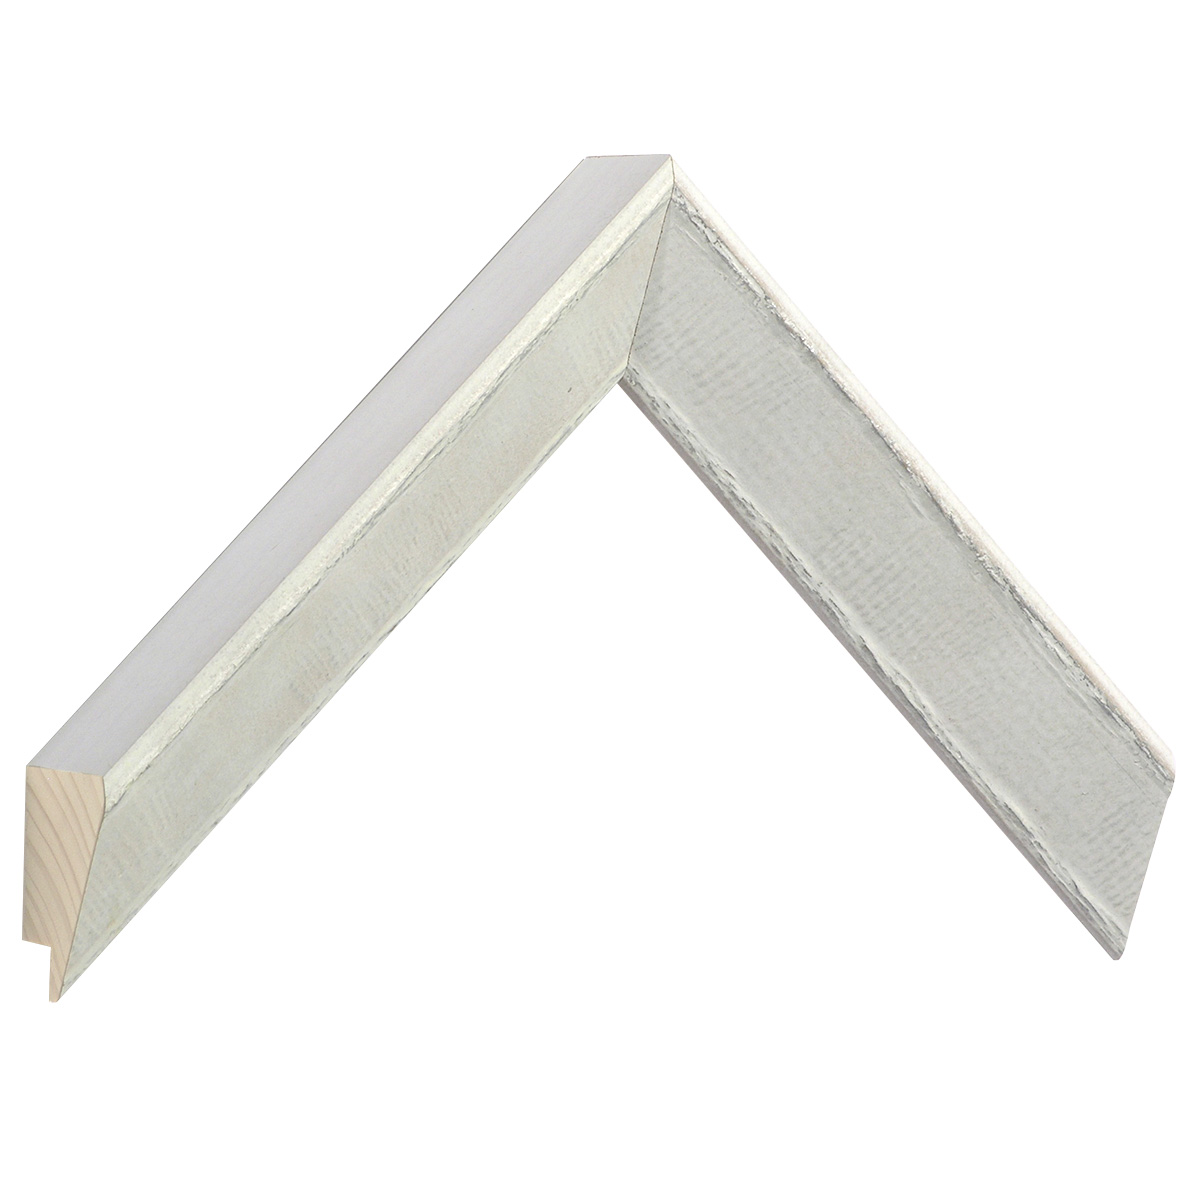 Moulding pine 32 mm height - White with silver decor